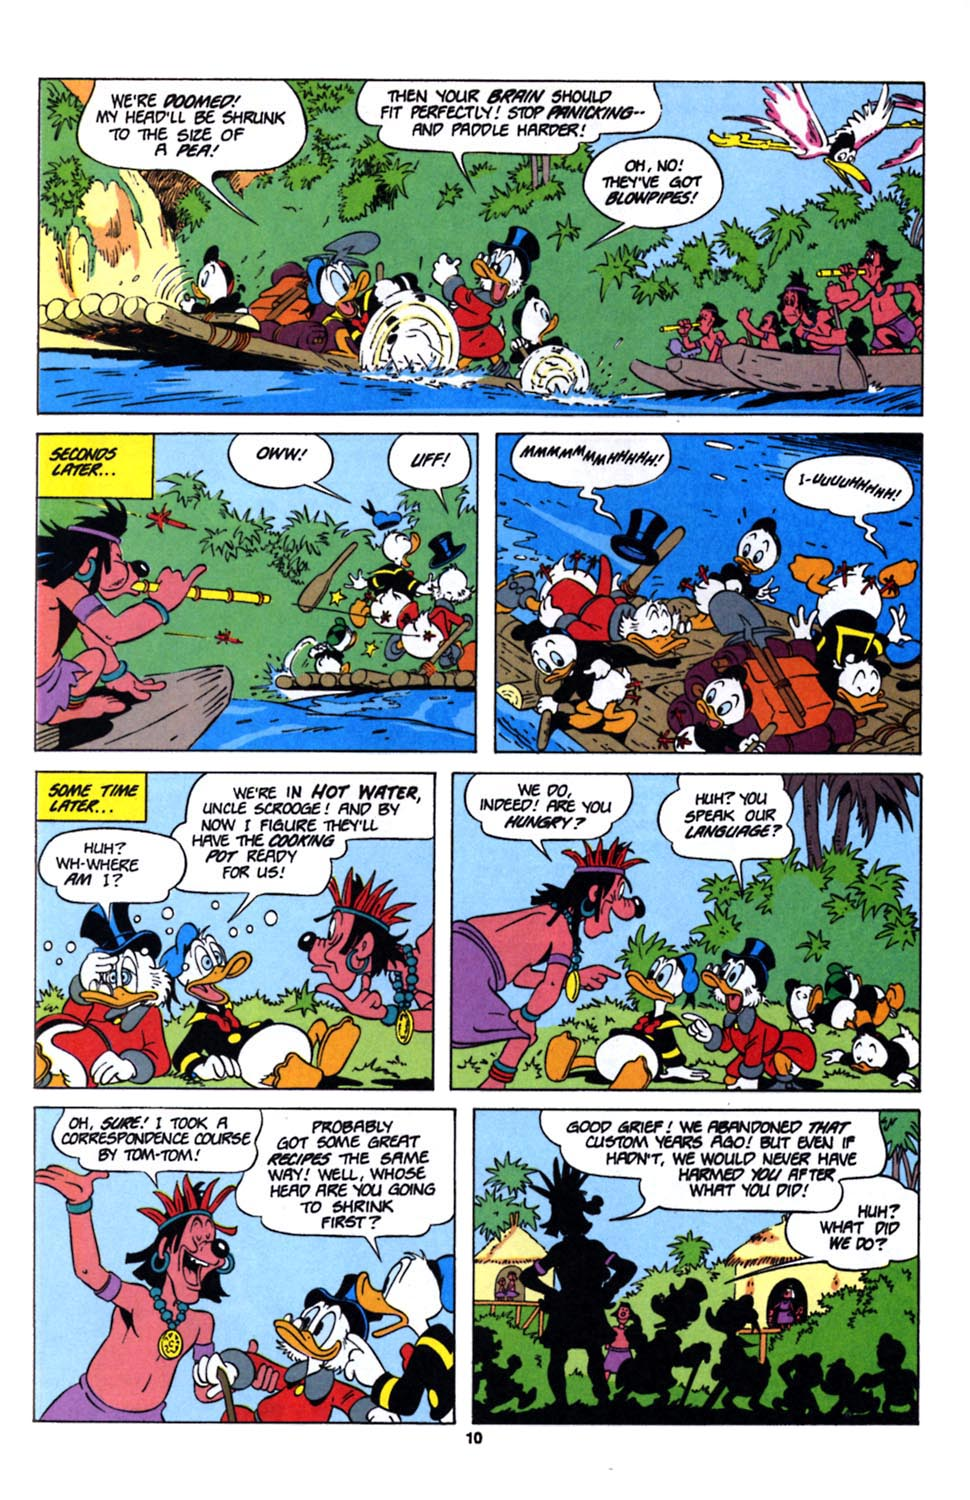 inefree.com/uncle-scrooge #162 - English 26